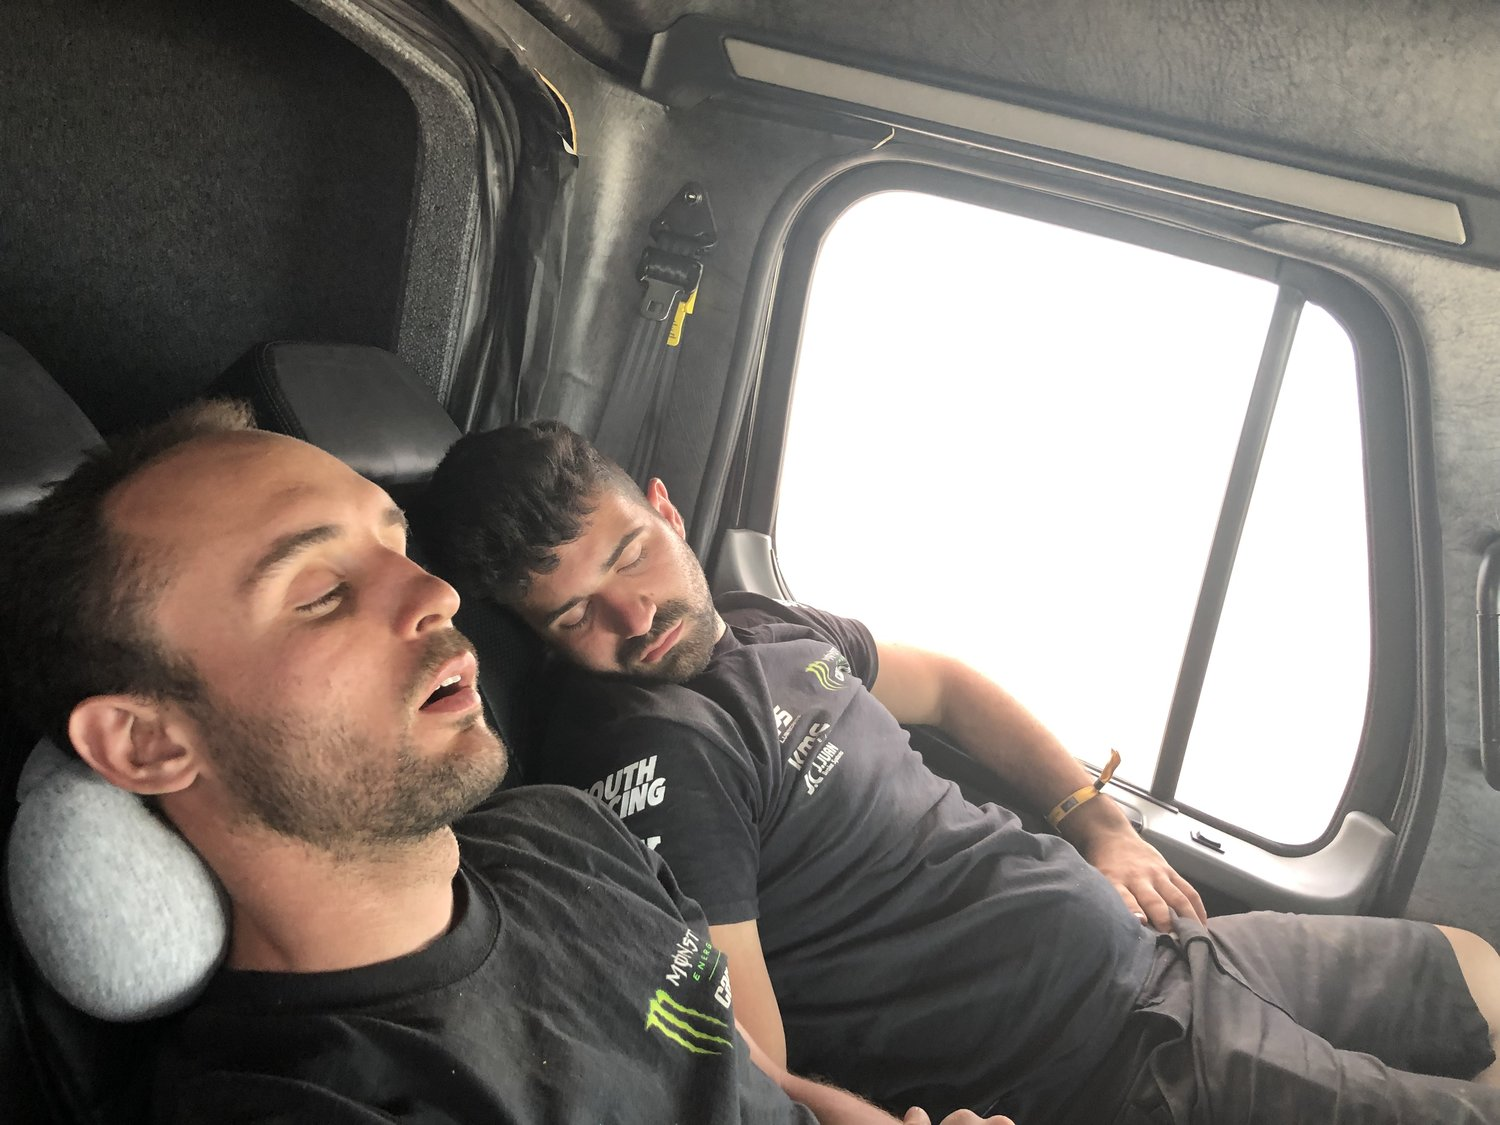 On the liaison, the mechanics all slept as they'd have a long night ahead preparing the vehicles for the marathon stage.